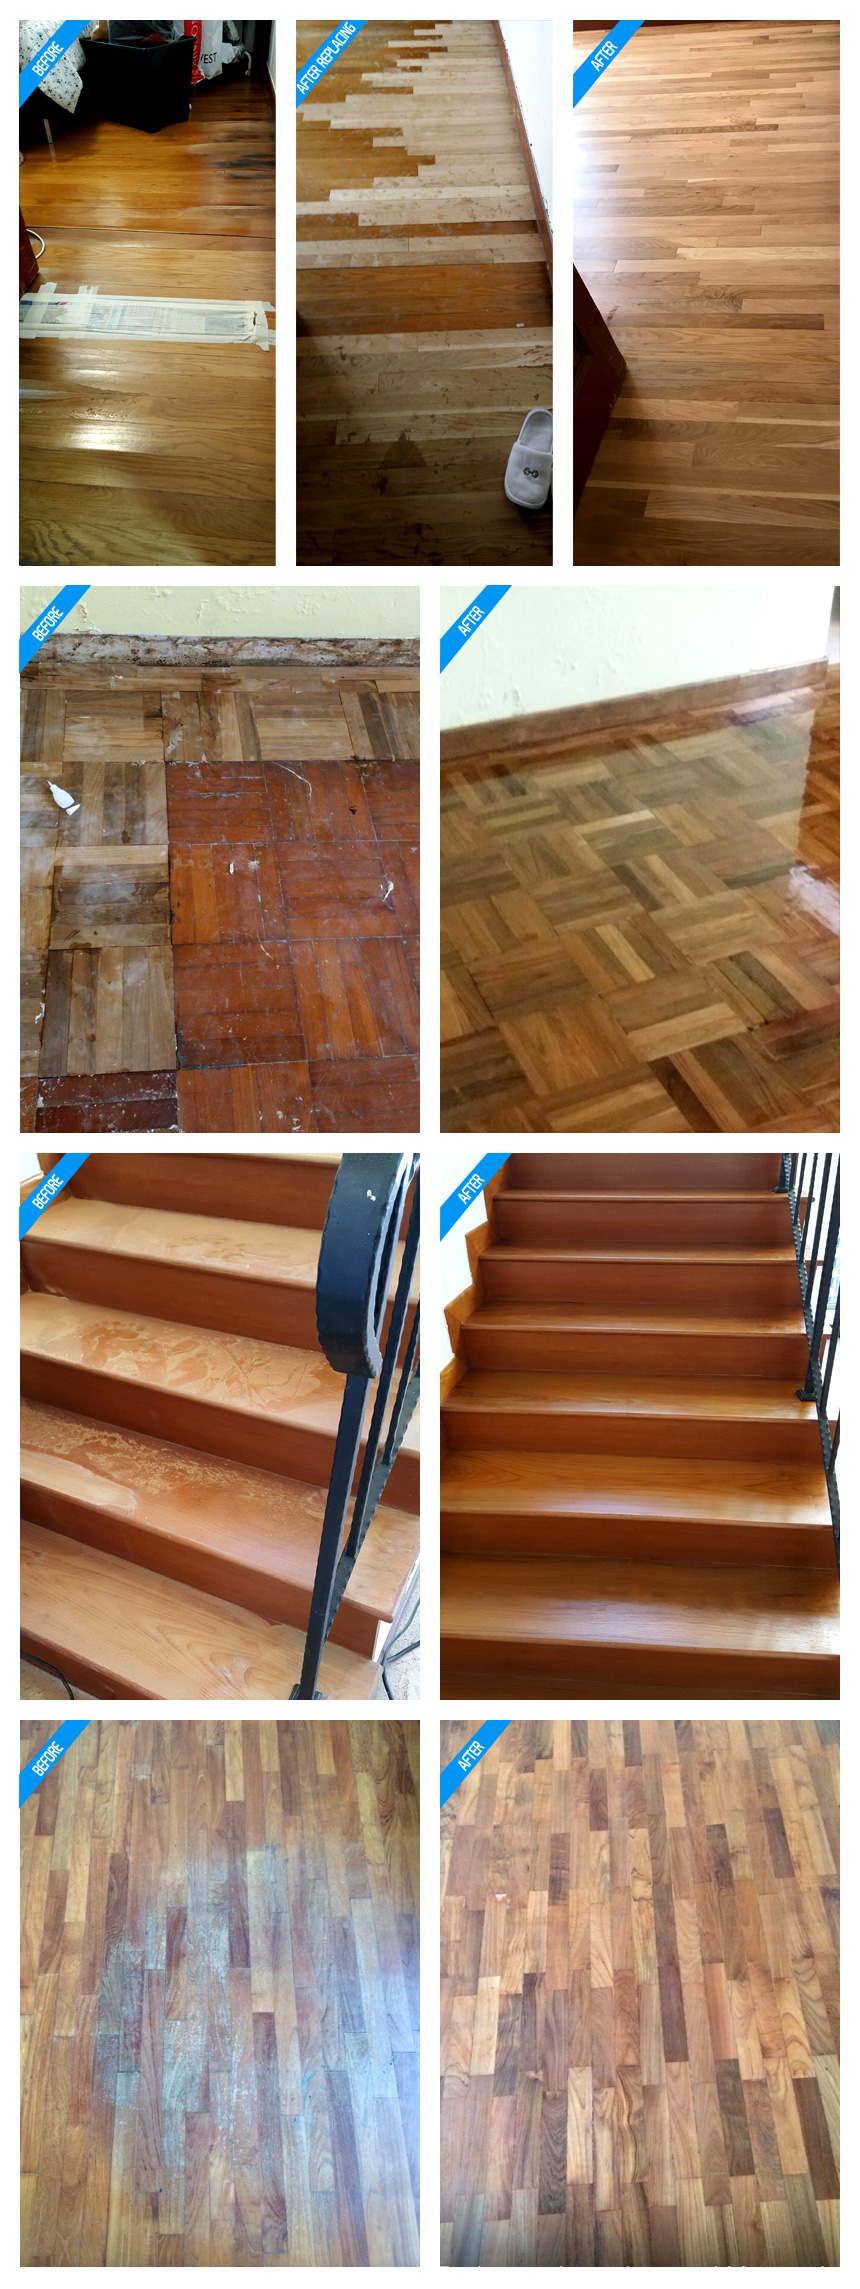 Parquet - before / after